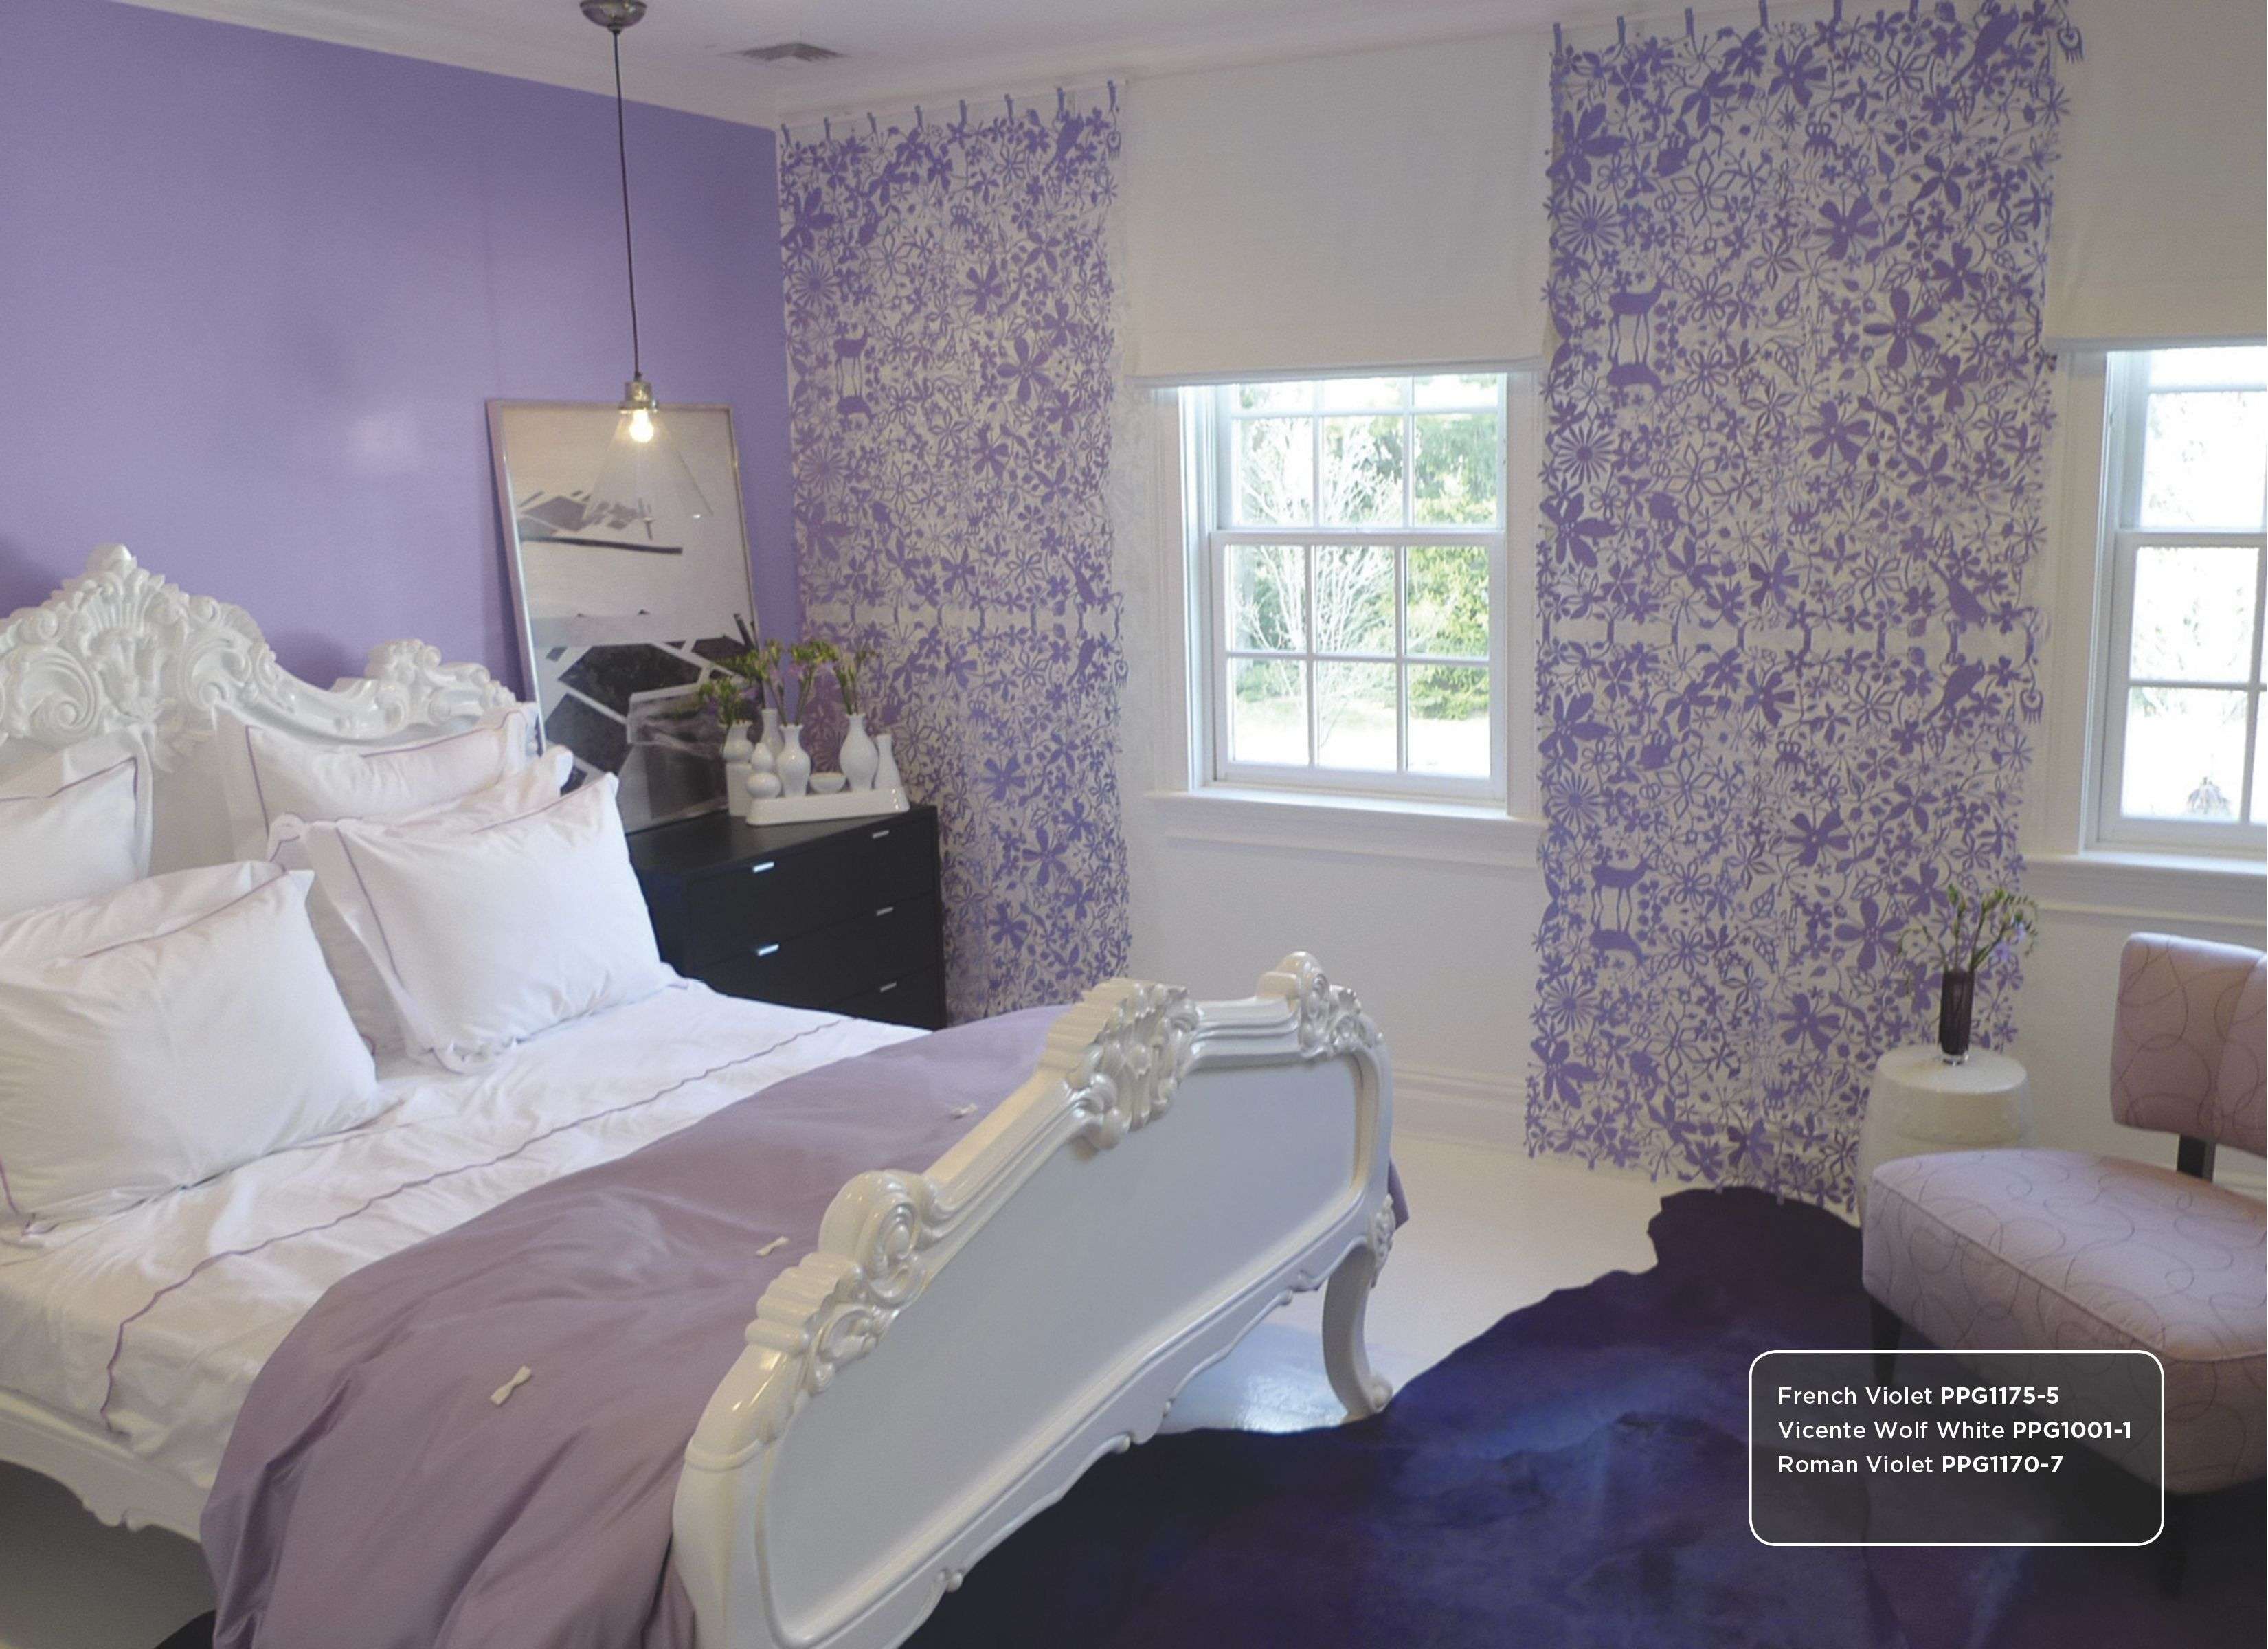 Paint colors for bedrooms purple - Purple Wall Color Inspiration Includes Roman Violet Ppg1170 7 And French Violet Ppg1175